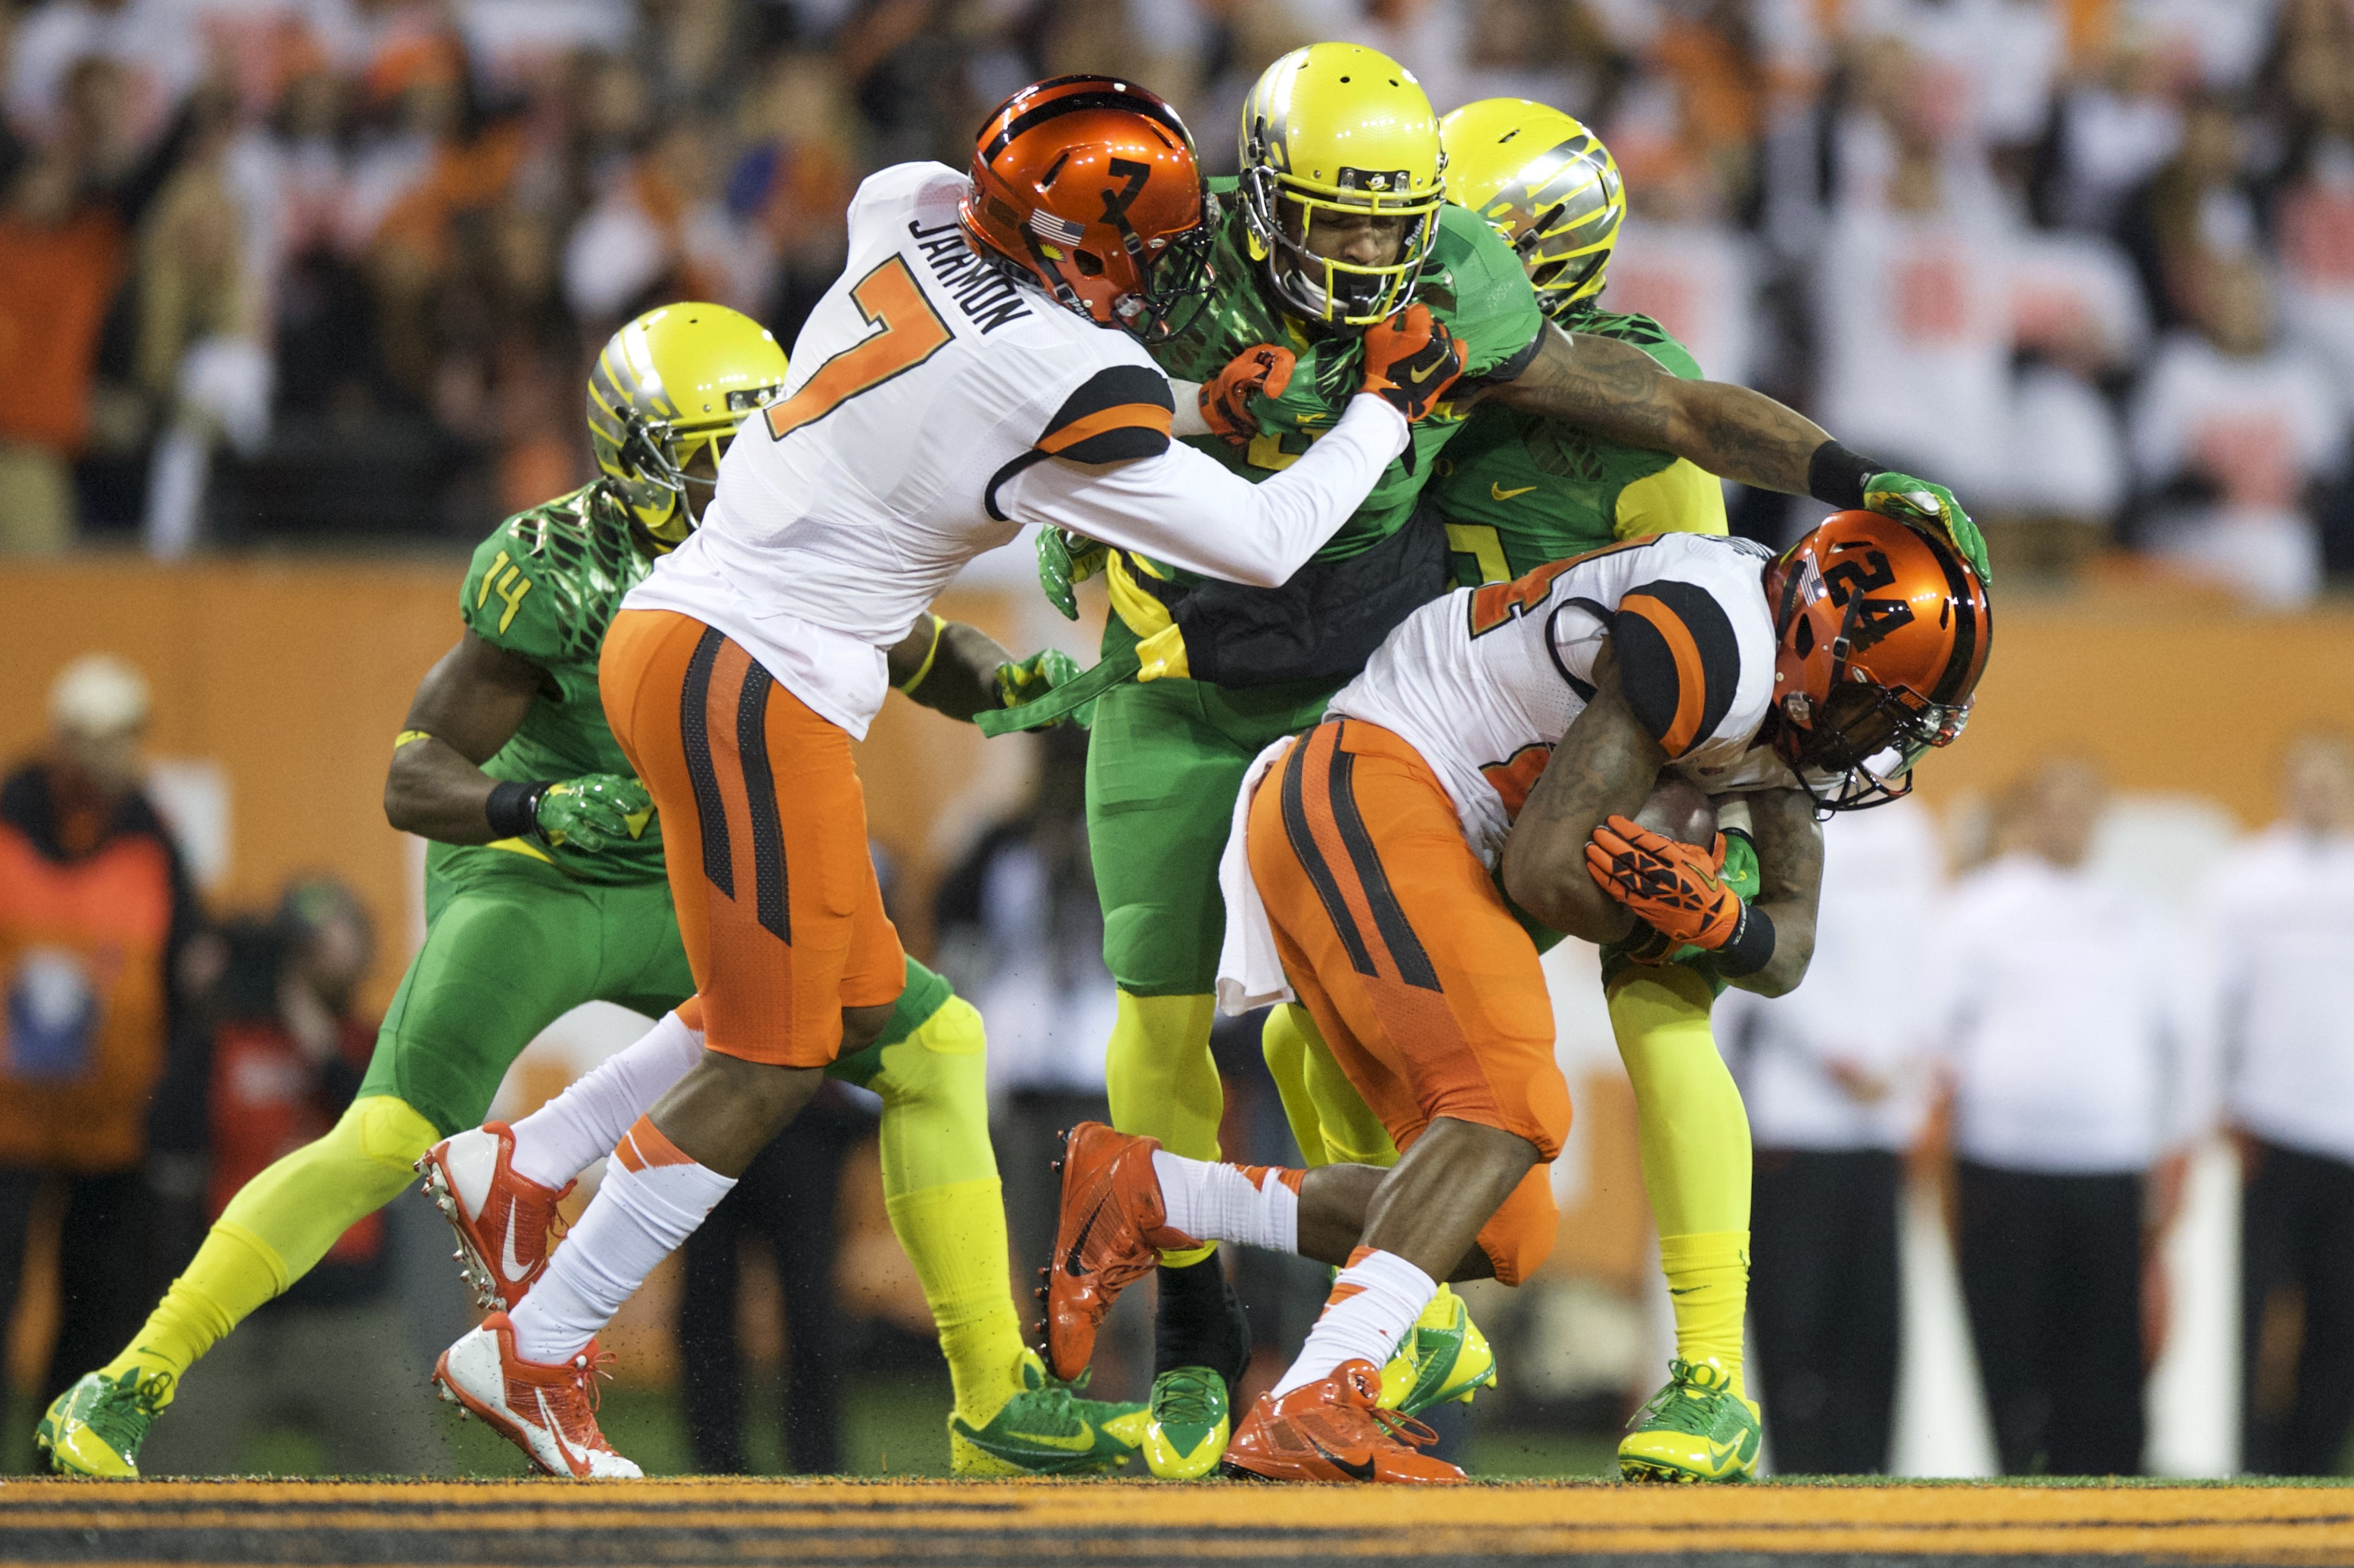 FILE - In this Nov. 29, 2014, file photo, Oregon State running back Storm Woods (24) breaks away from Oregon defender Erick Dargan (4) with help from teammate Hunter Jarmon (7) during the first quarter of an NCAA college football game in Corvallis, Or. Wo